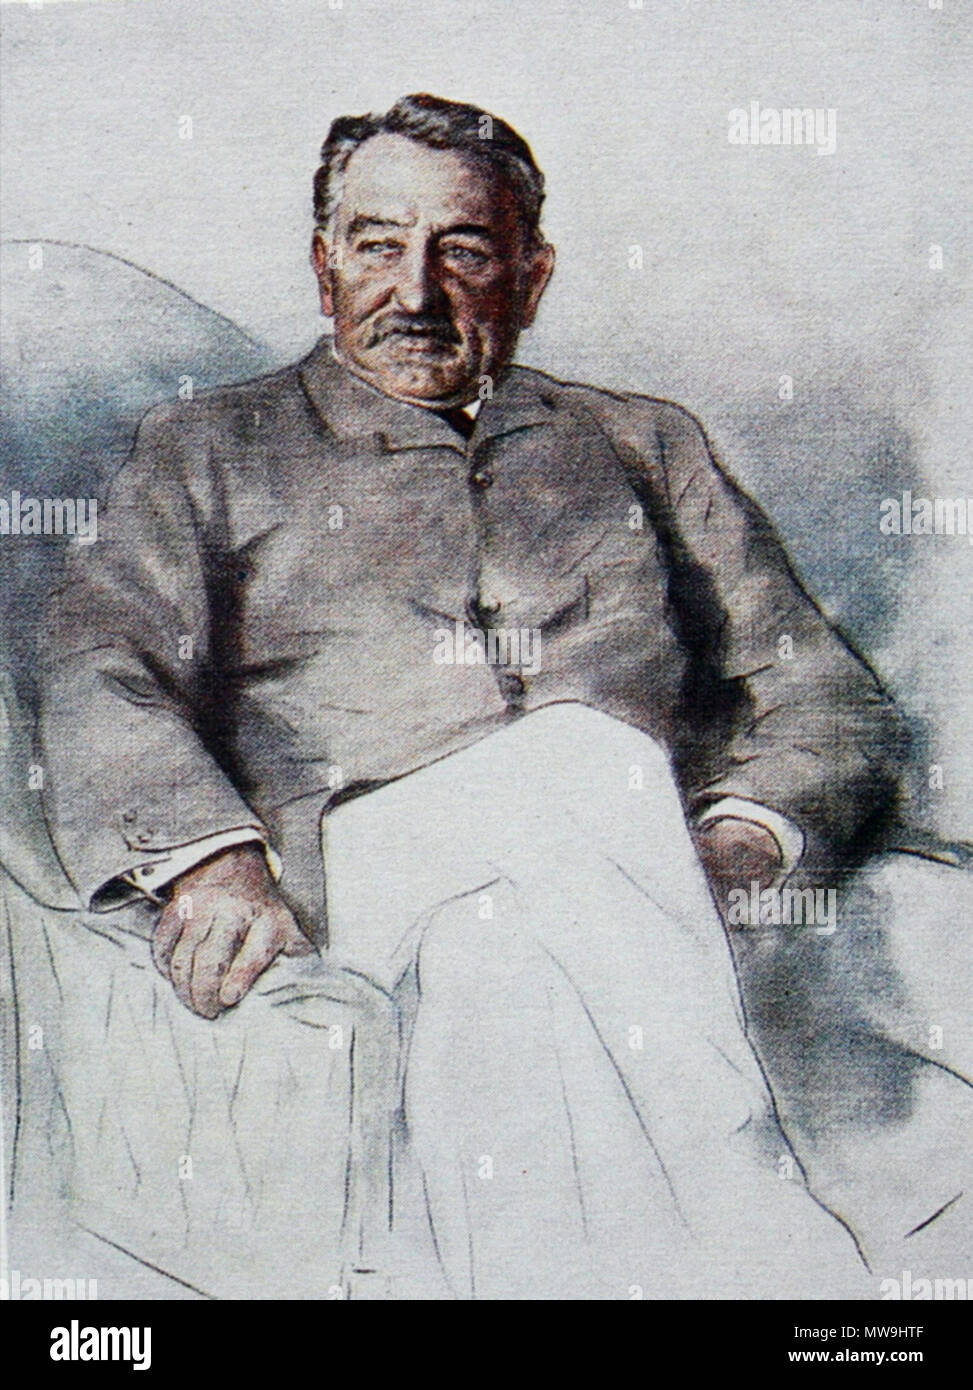 . Cecil John Rhodes 1853-1902 South African mining magnate and politician    119 Cecil john rhodes00 - Stock Image